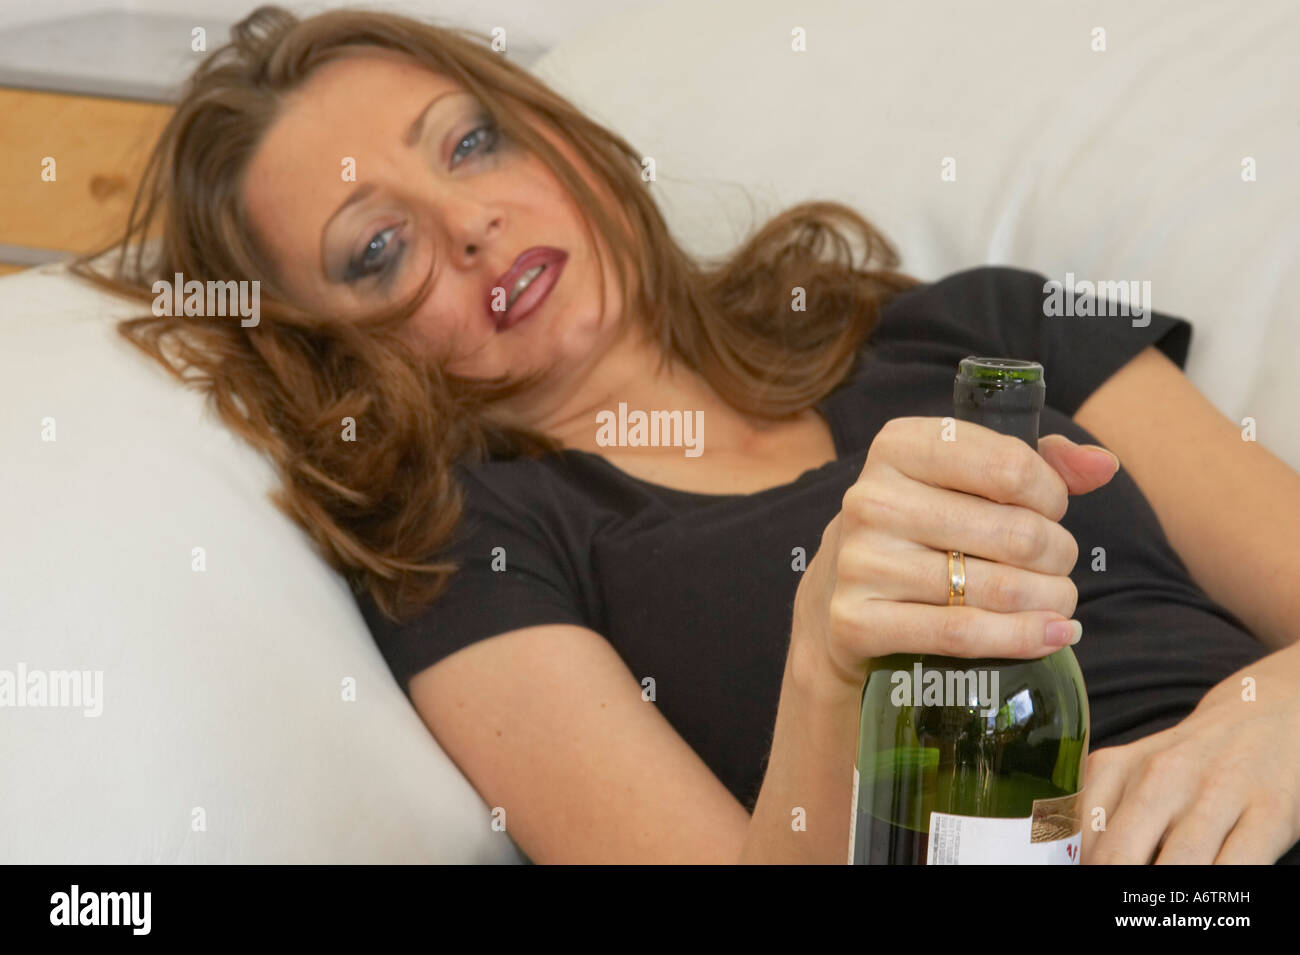 Young Woman Lying On Couch After Drinking Too Much Holding Wine